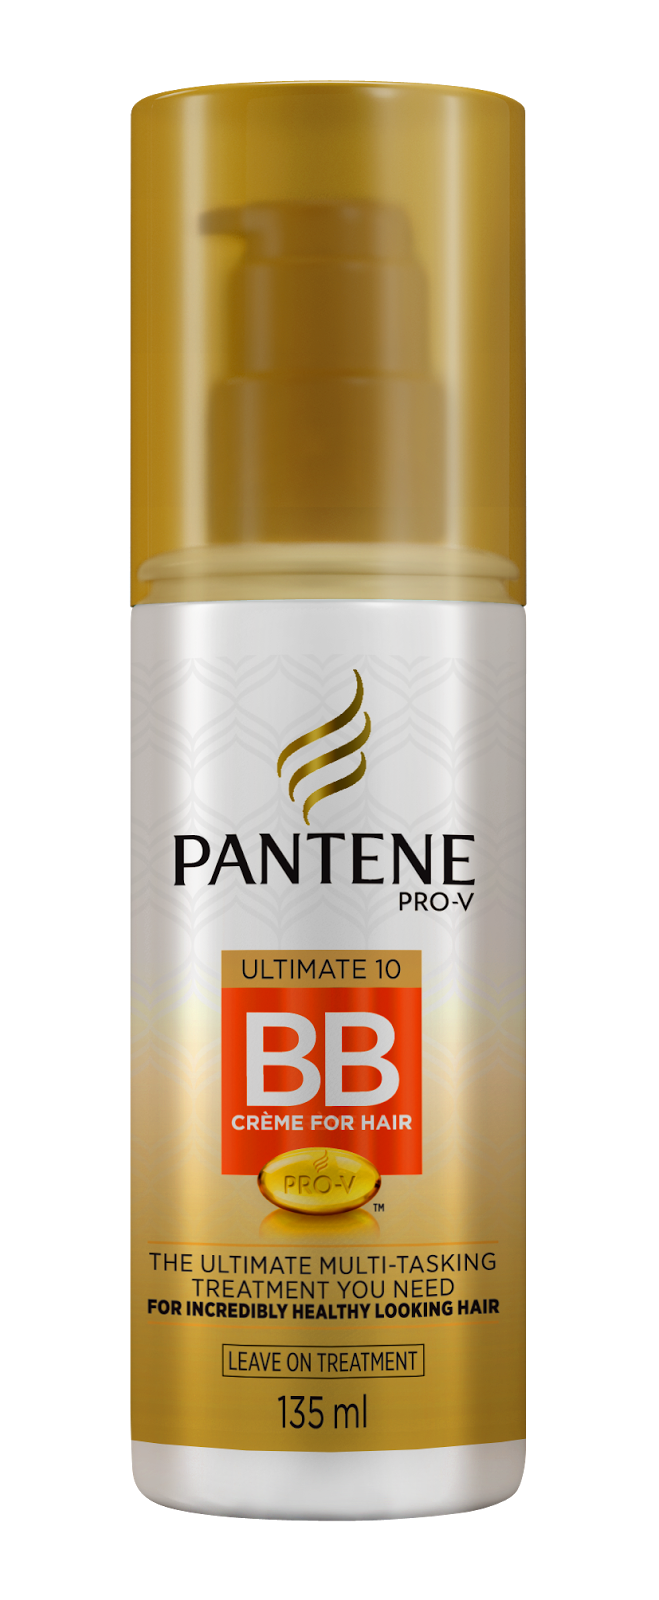 Product Review - Pantene